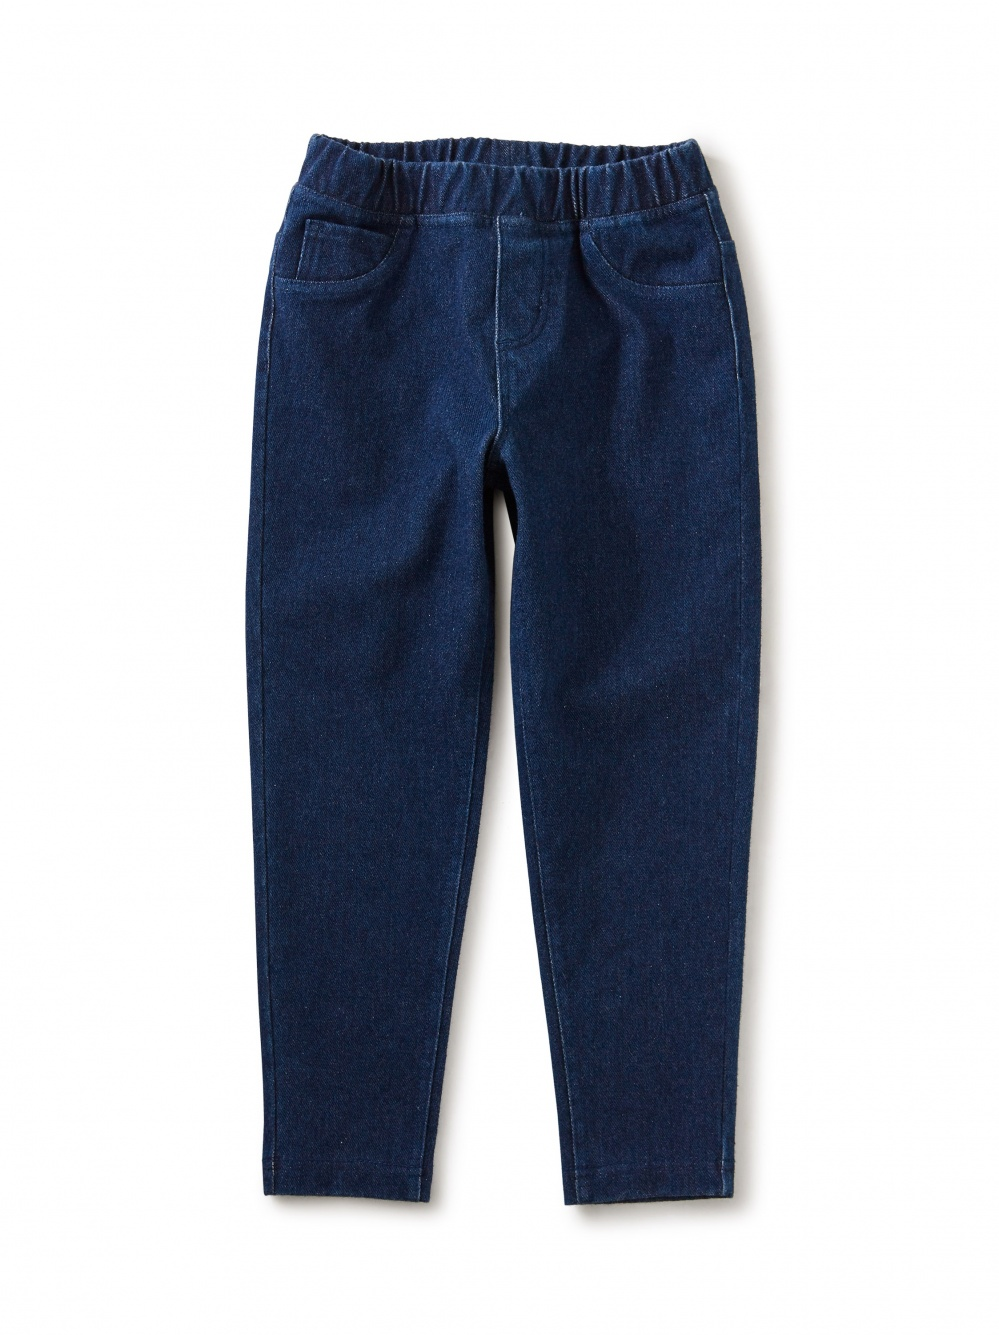 Denim Like Adventure Pants